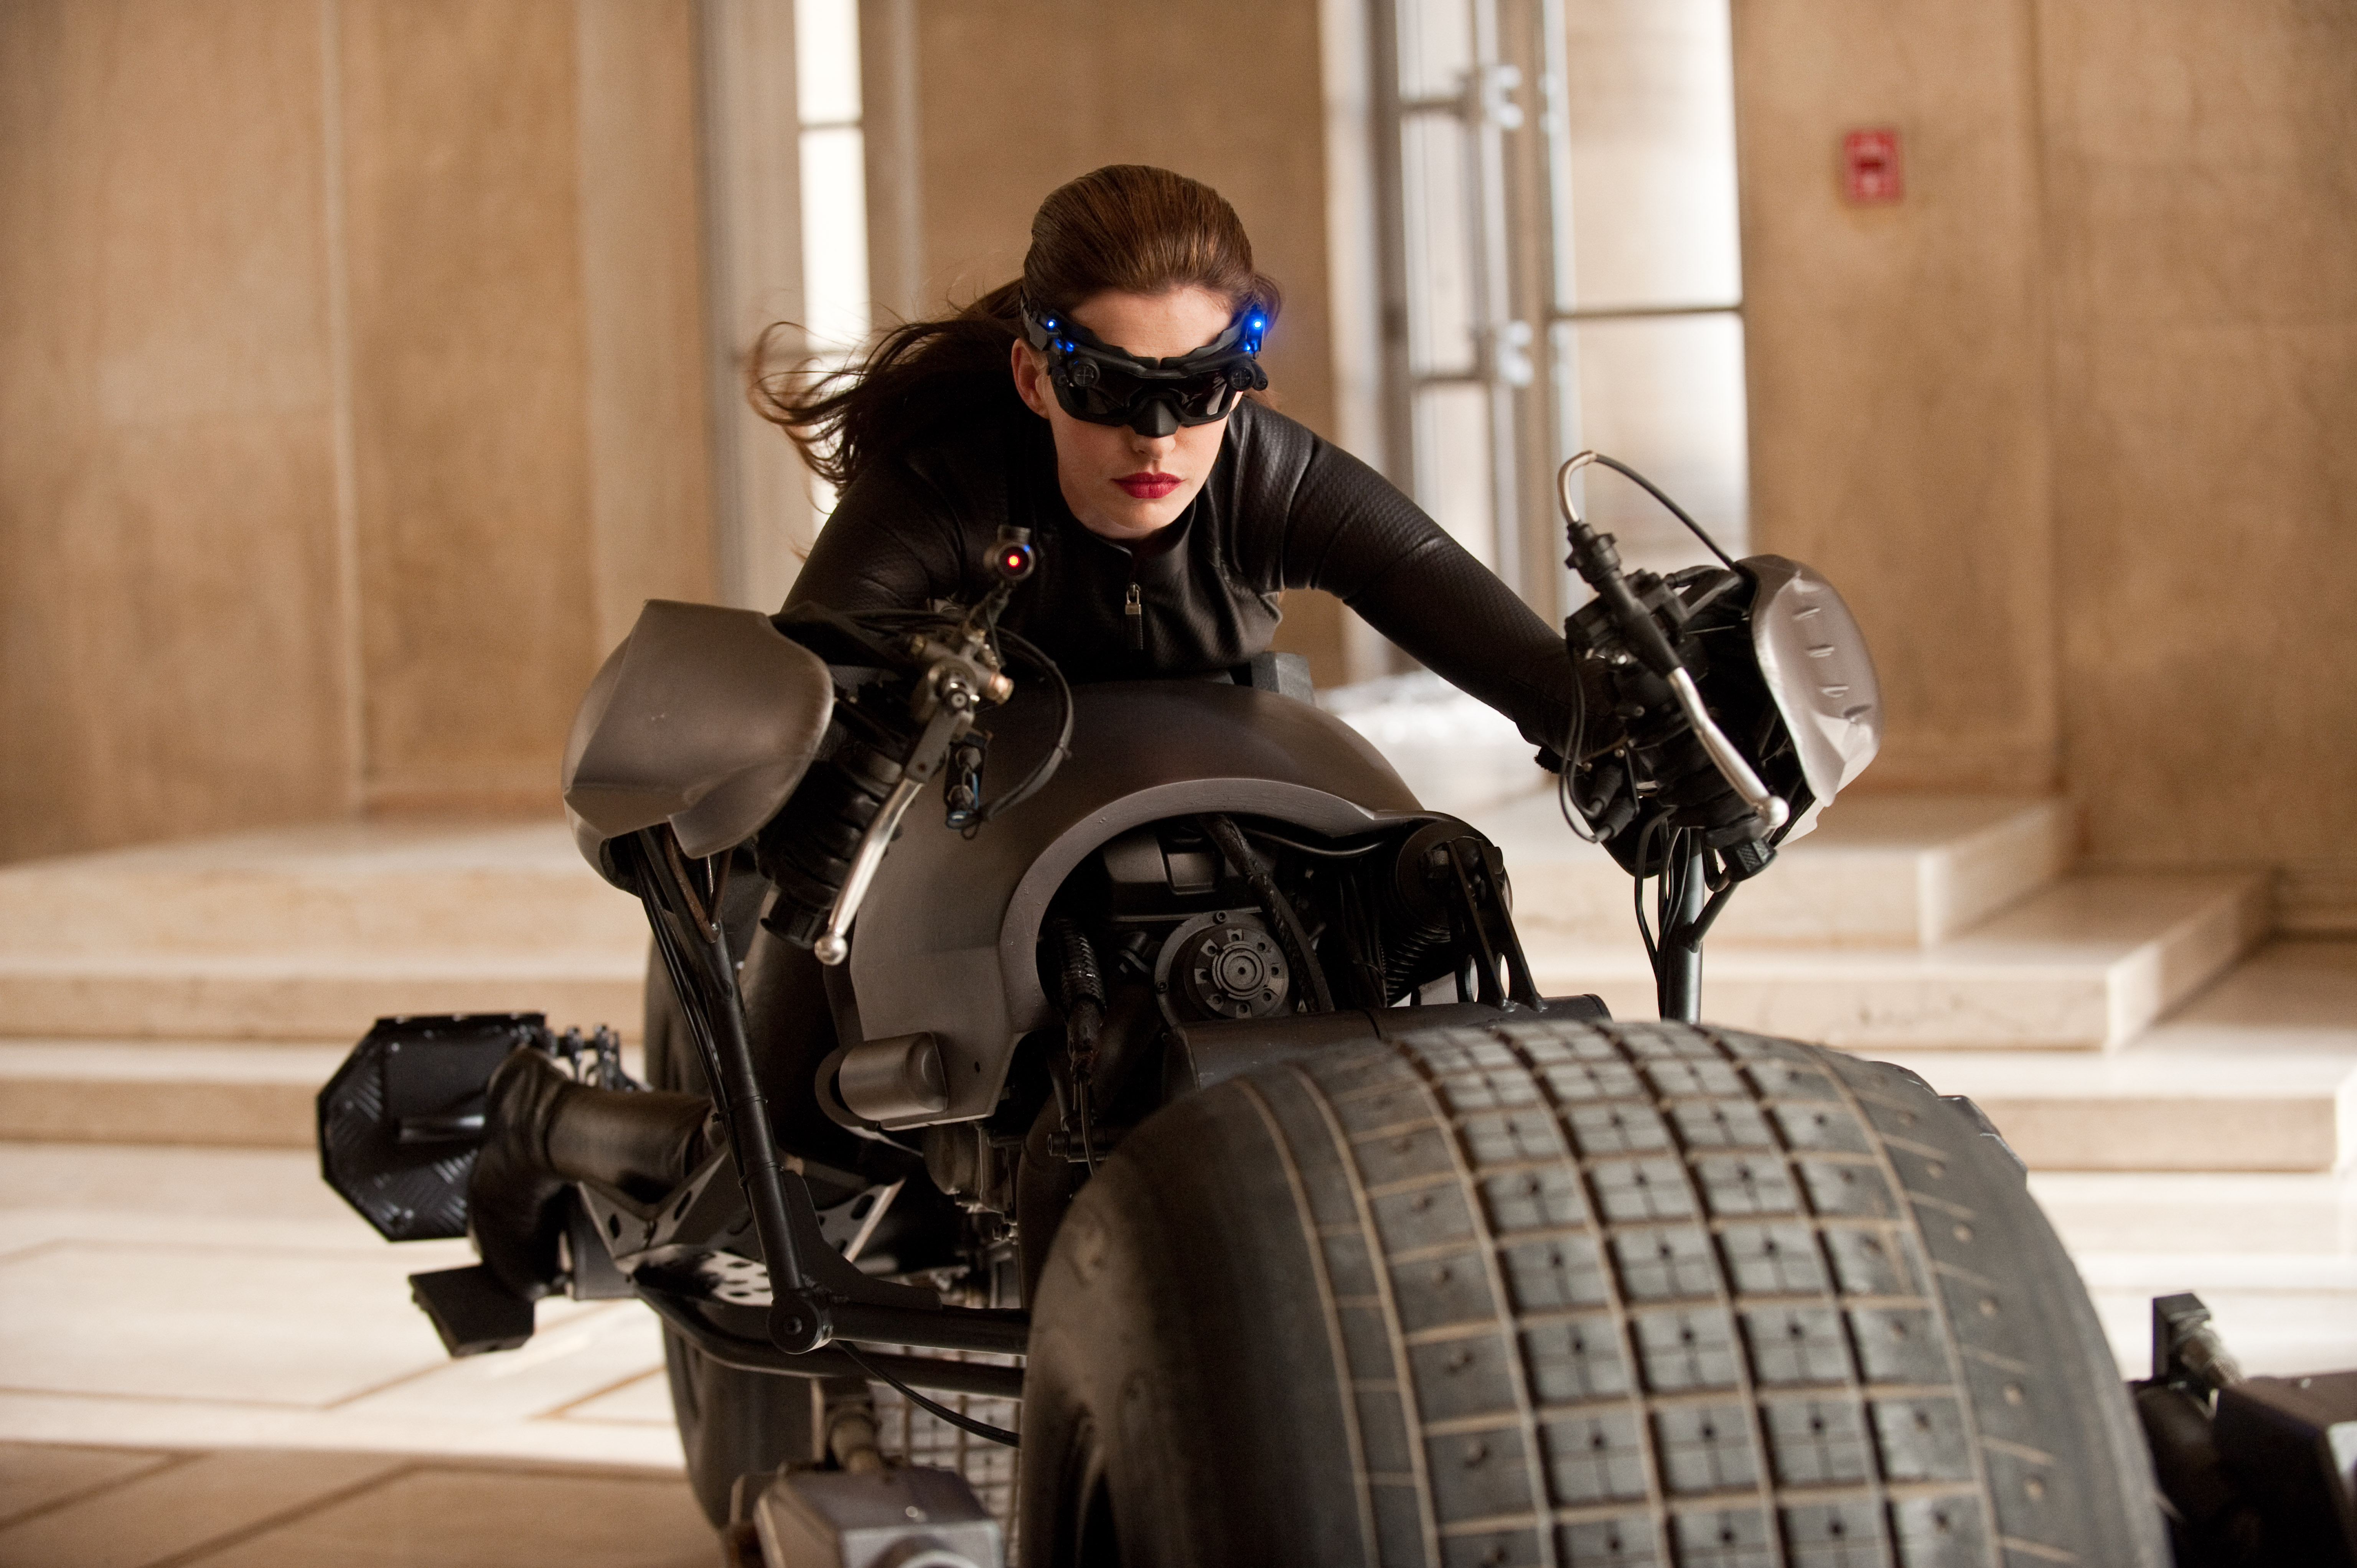 Summer's Top 8 Female Action Heroes 2012: Anne Hathaway as Catwoman